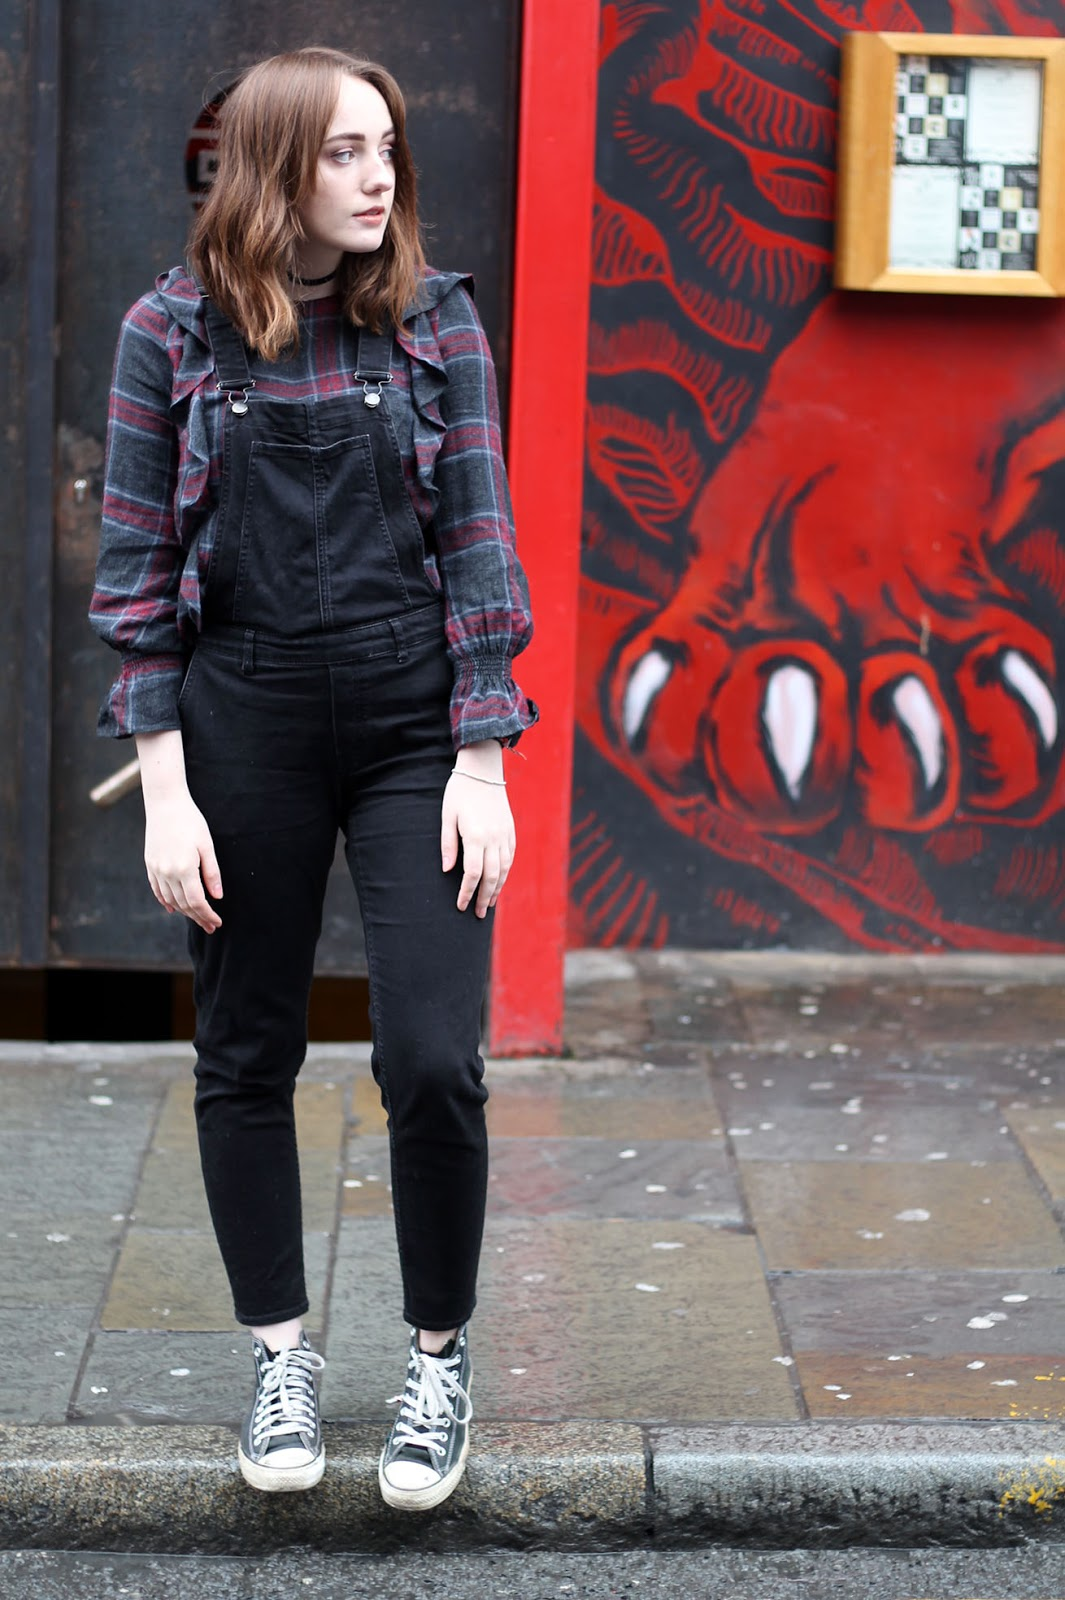 Liverpool fashion blogger, Zara checked ruffle top and denim dungarees and black converse